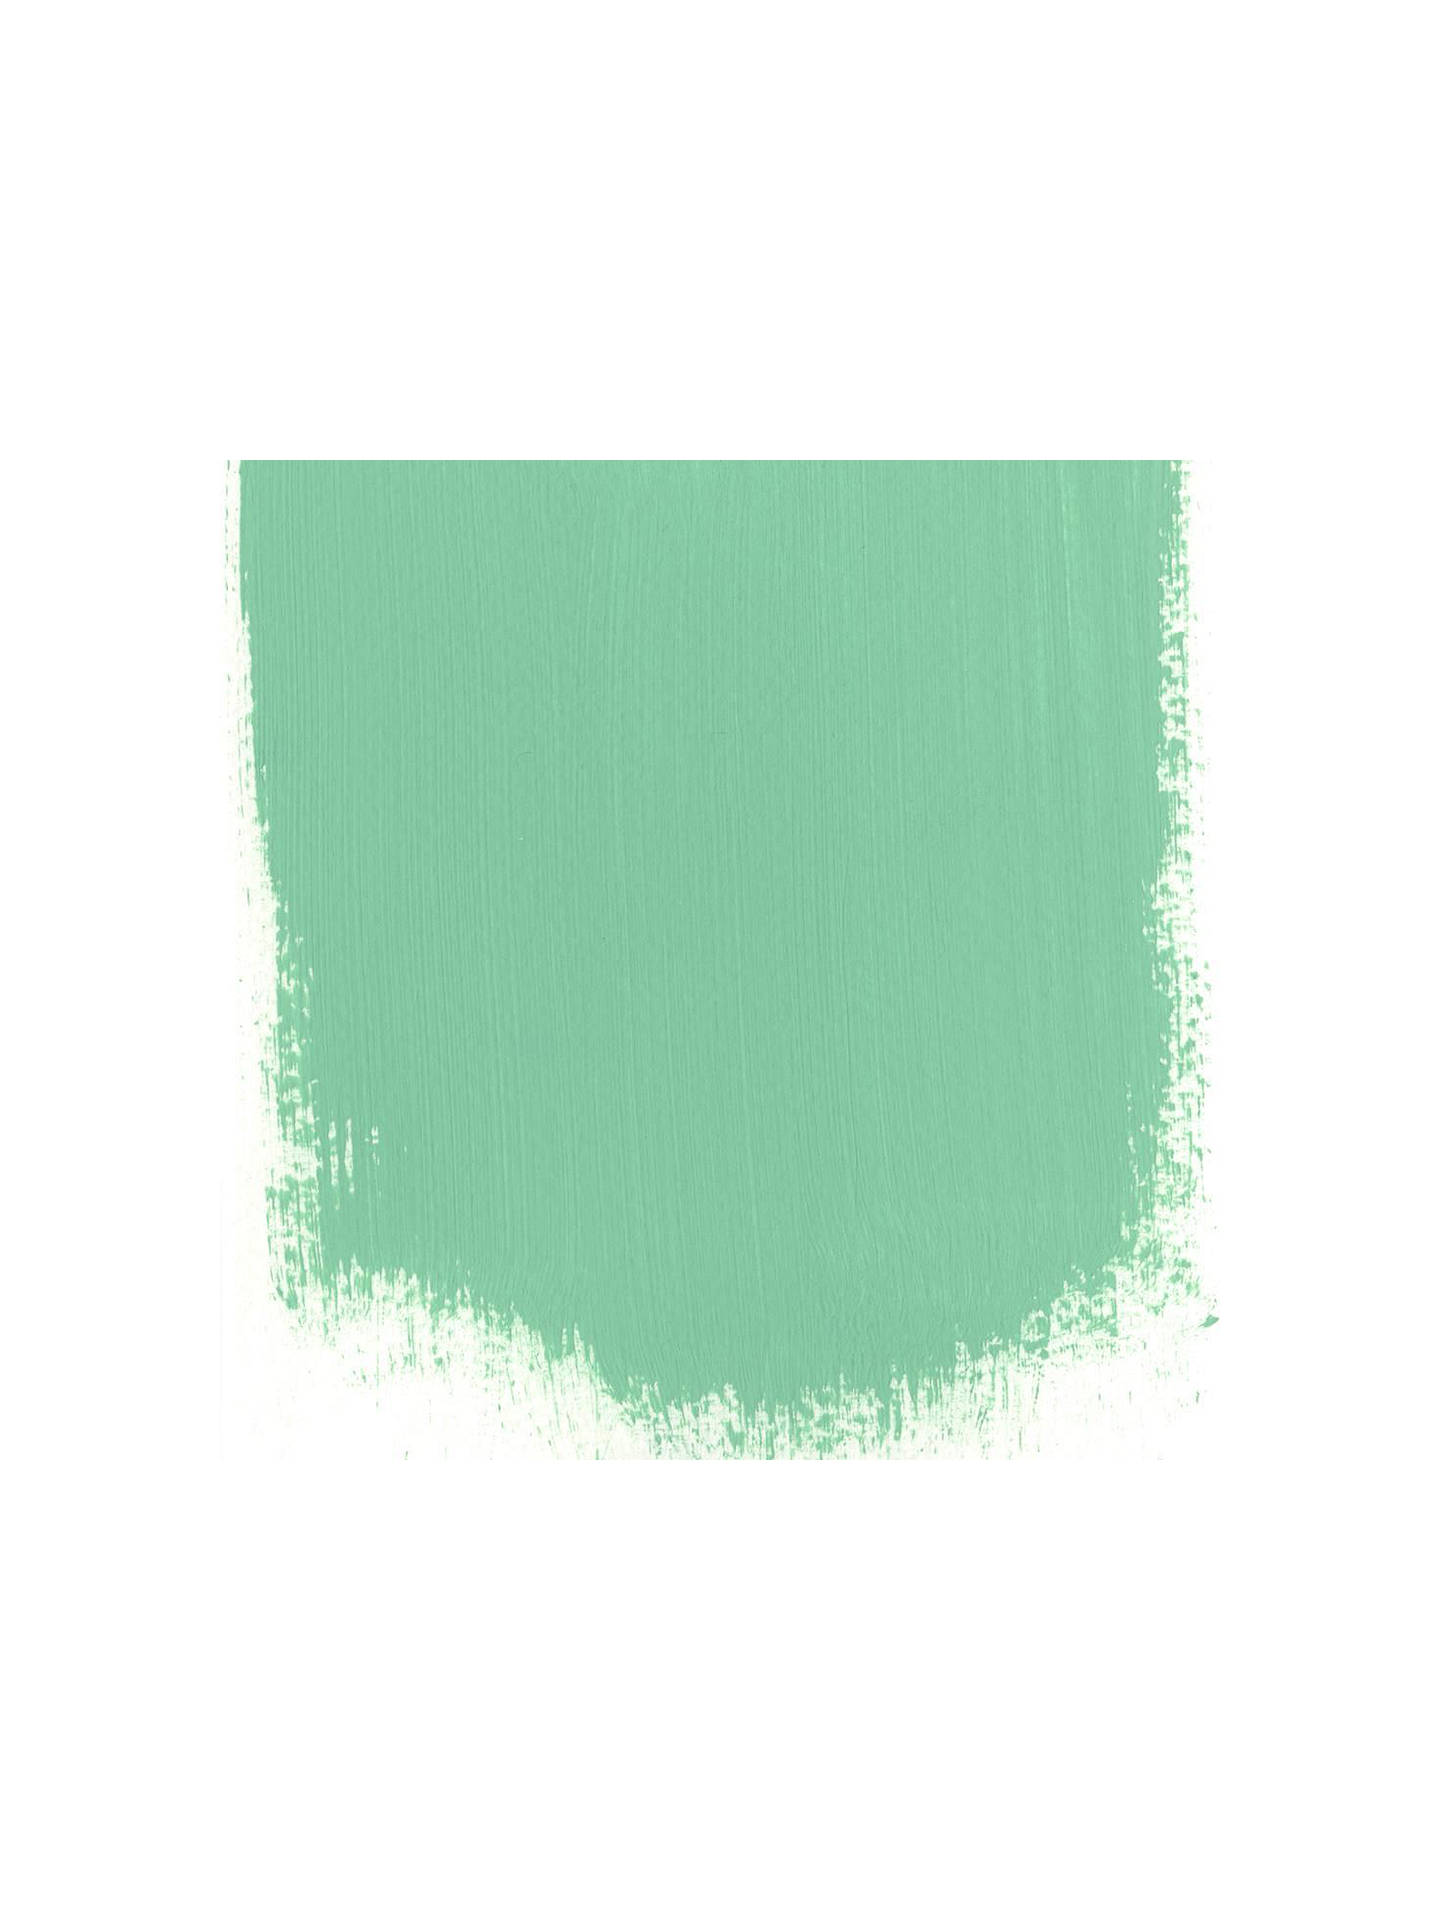 Buy Designers Guild Water Based Eggshell 1L, Green Blues, Retro Jade (79) Online at johnlewis.com